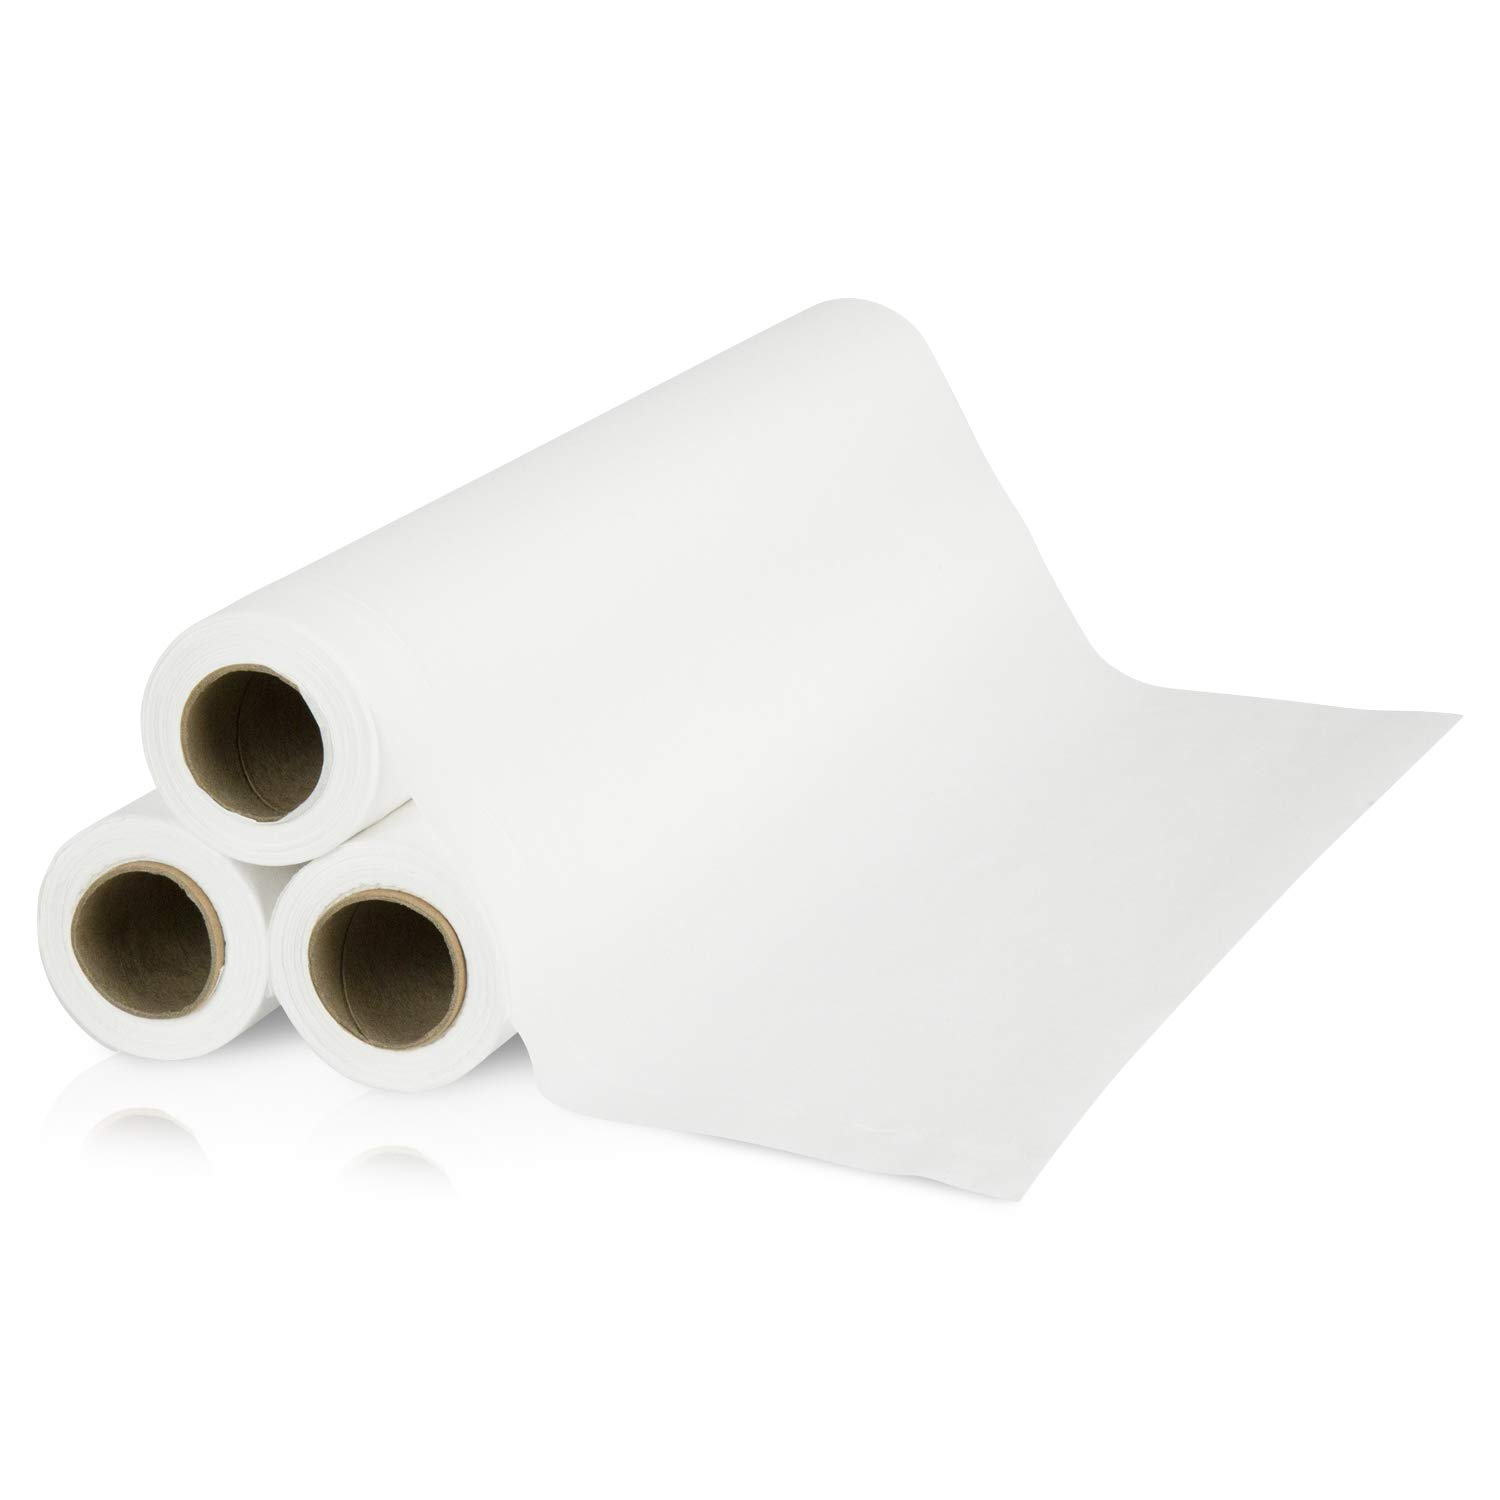 VivePRO Medical Exam Table Paper (12 rolls) - Crepe Finish 17.5 inch by 125 feet - Disposable for Spas, Doctor Offices and Chiropractors - Premium 22GSM Weight